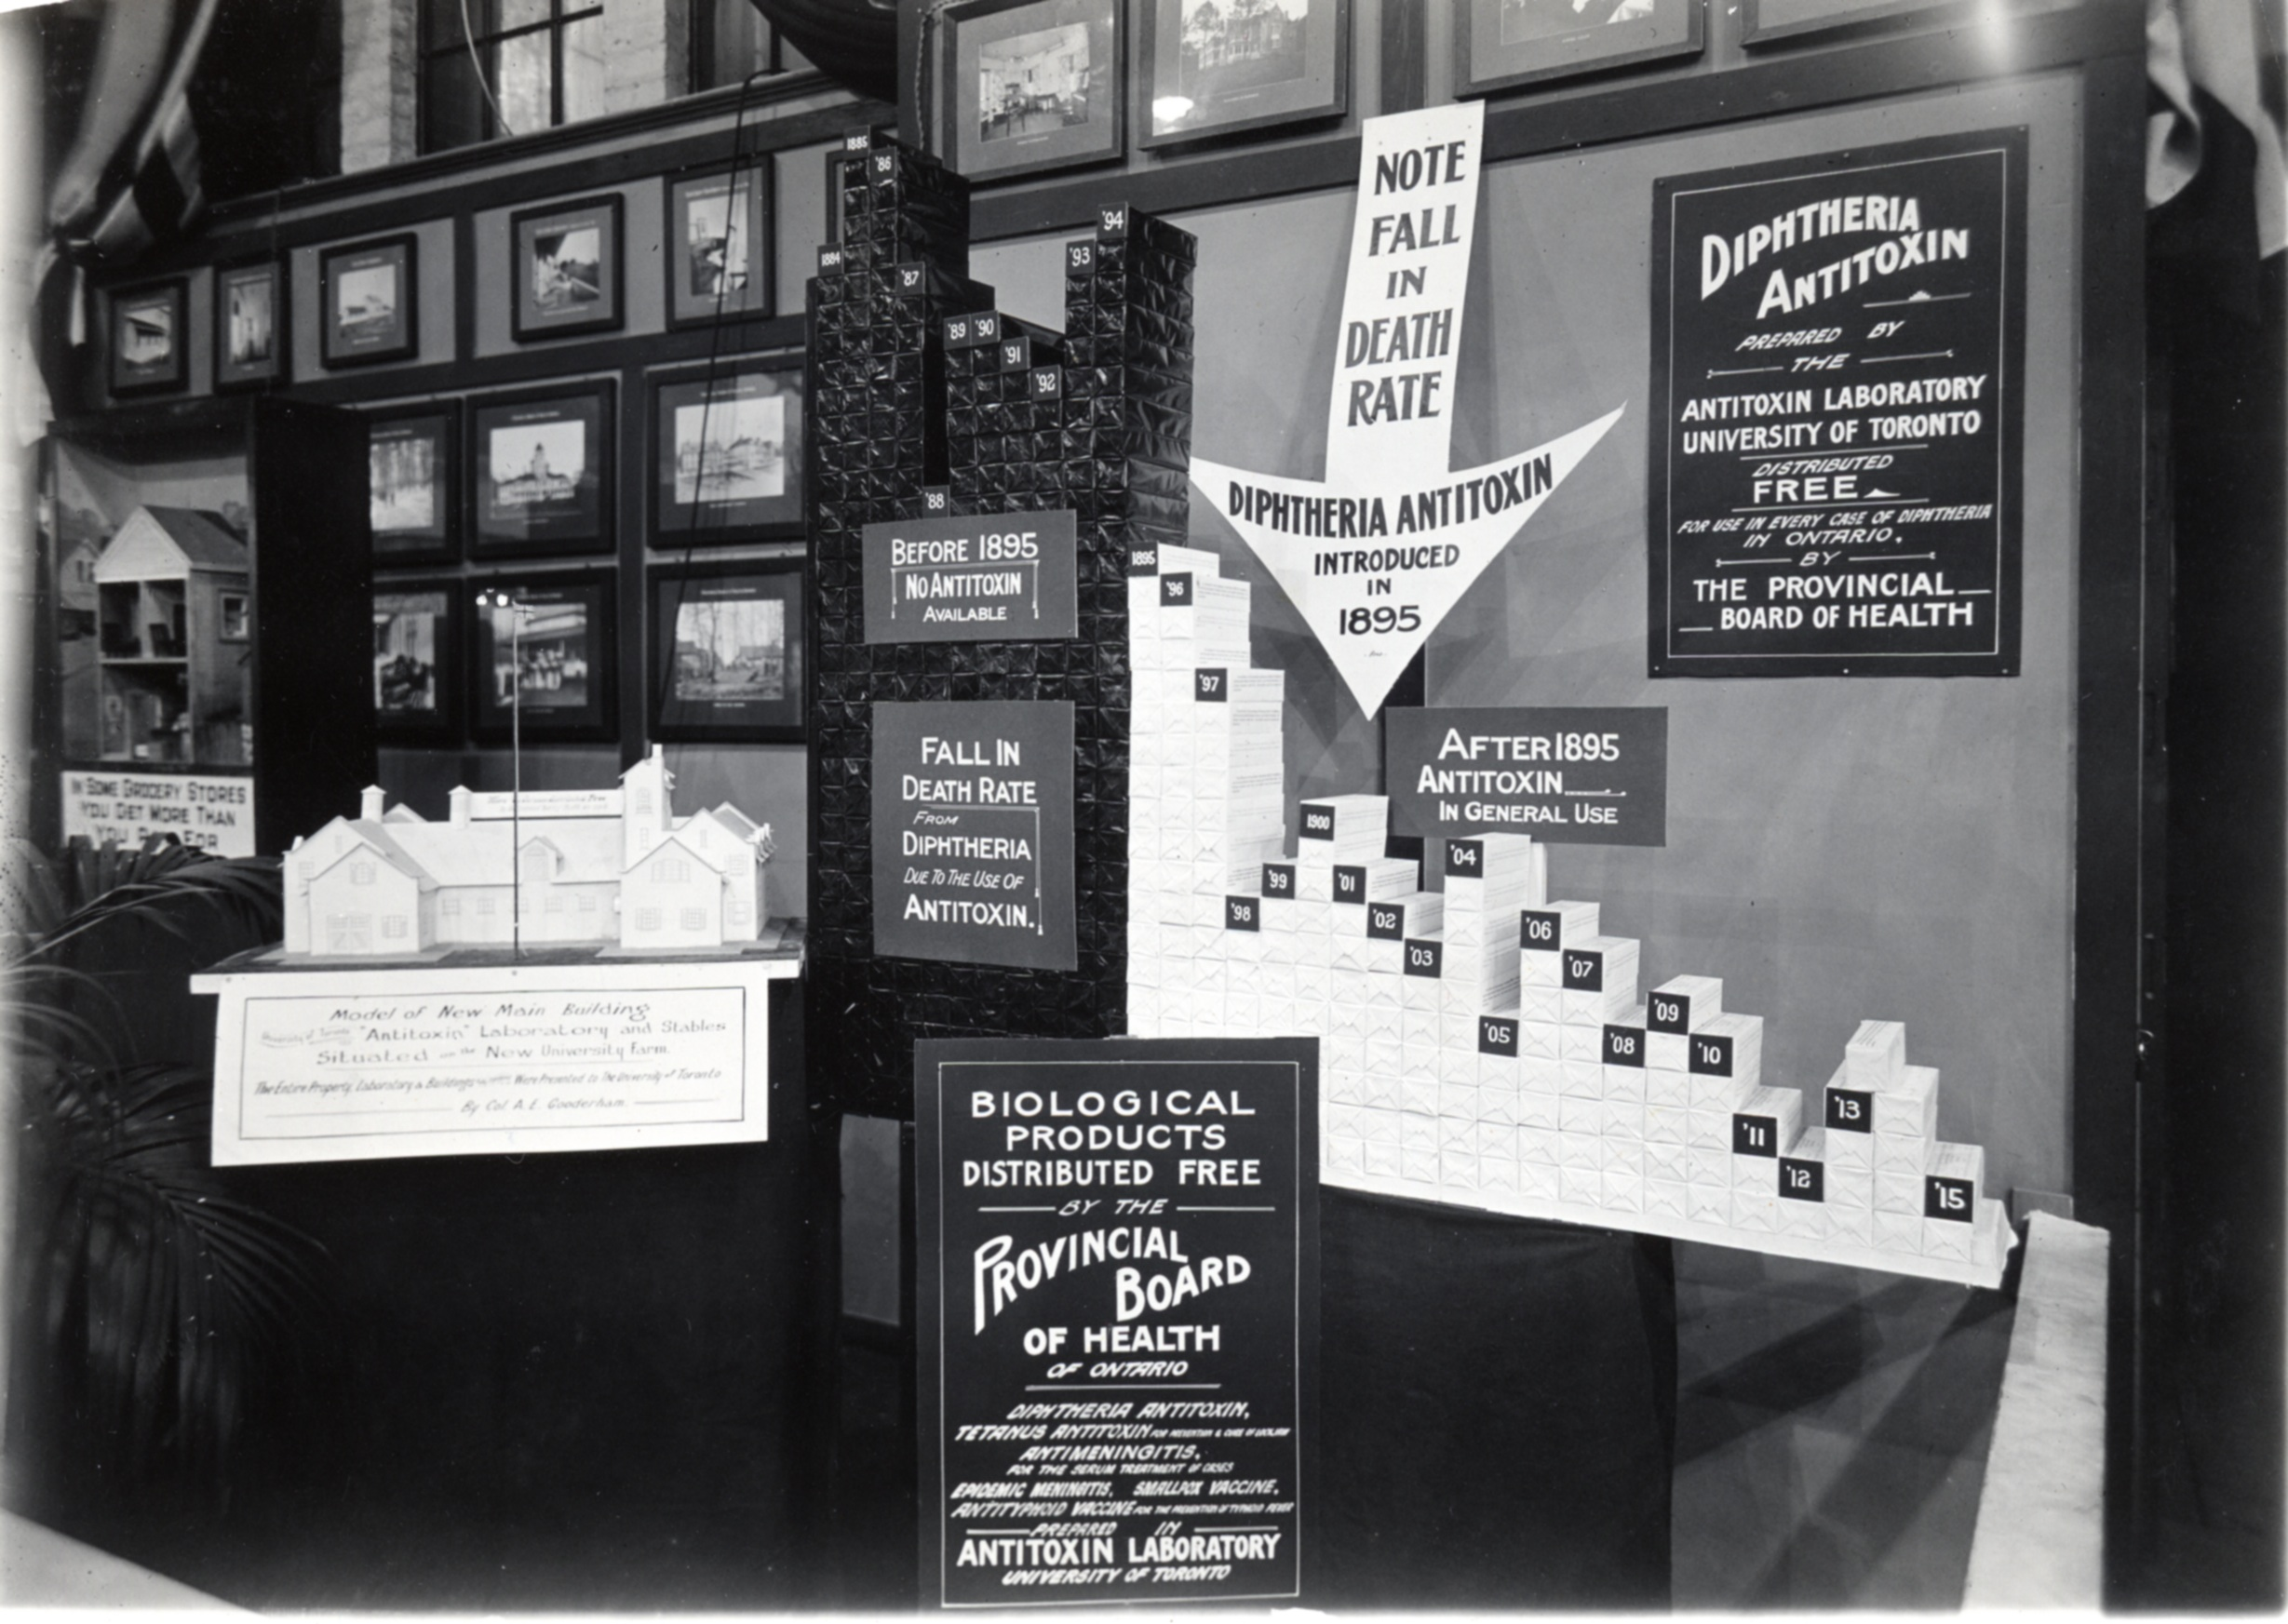 Ontario Provincial Board of Health exhibit at the Canadian National Exhibition during the summer of 1916, promoting the impact of diphtheria antitoxin on death rates and the free availability of diphtheria antitoxin produced by the Antitoxin Laboratory.